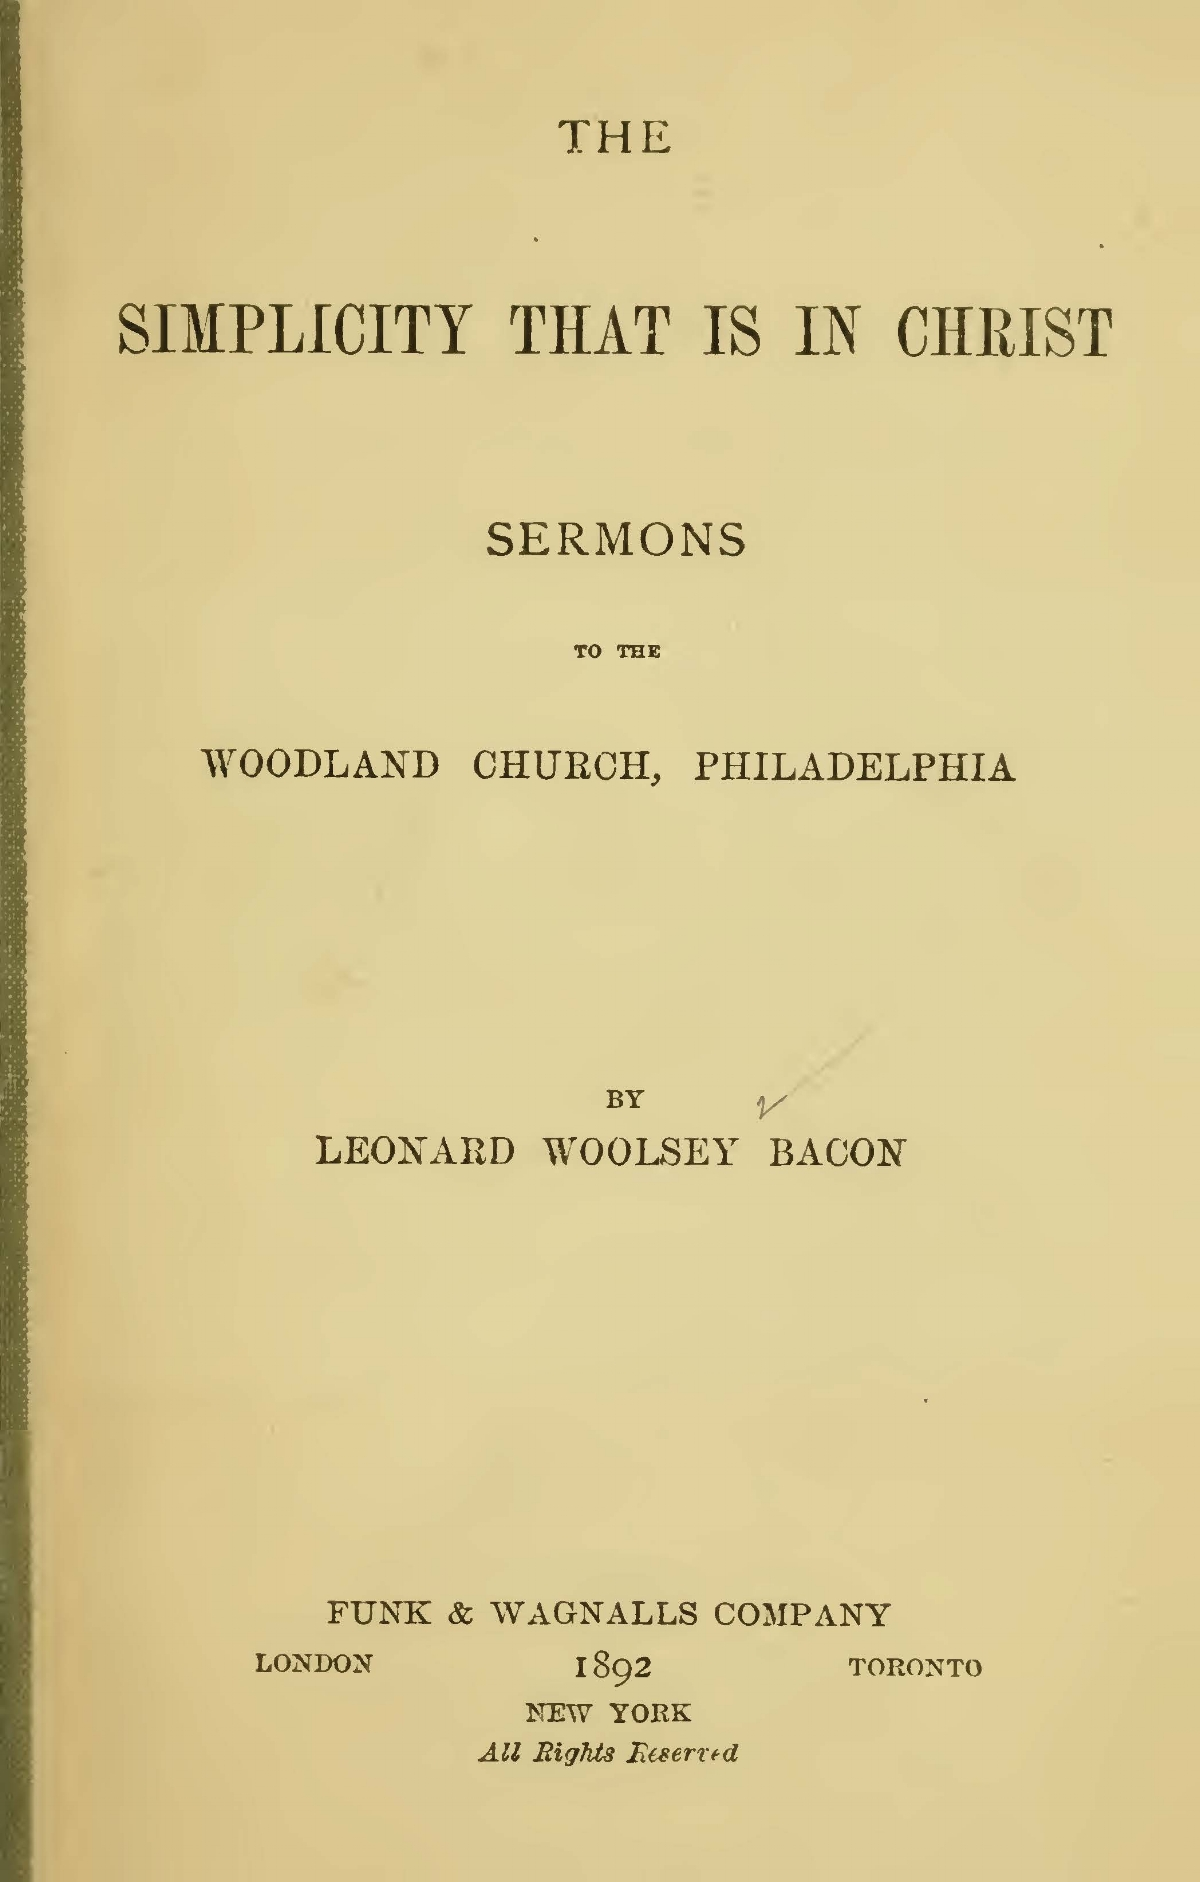 Bacon, Leonard Woolsey, The Simplicity That Is In Christ Title Page.jpg